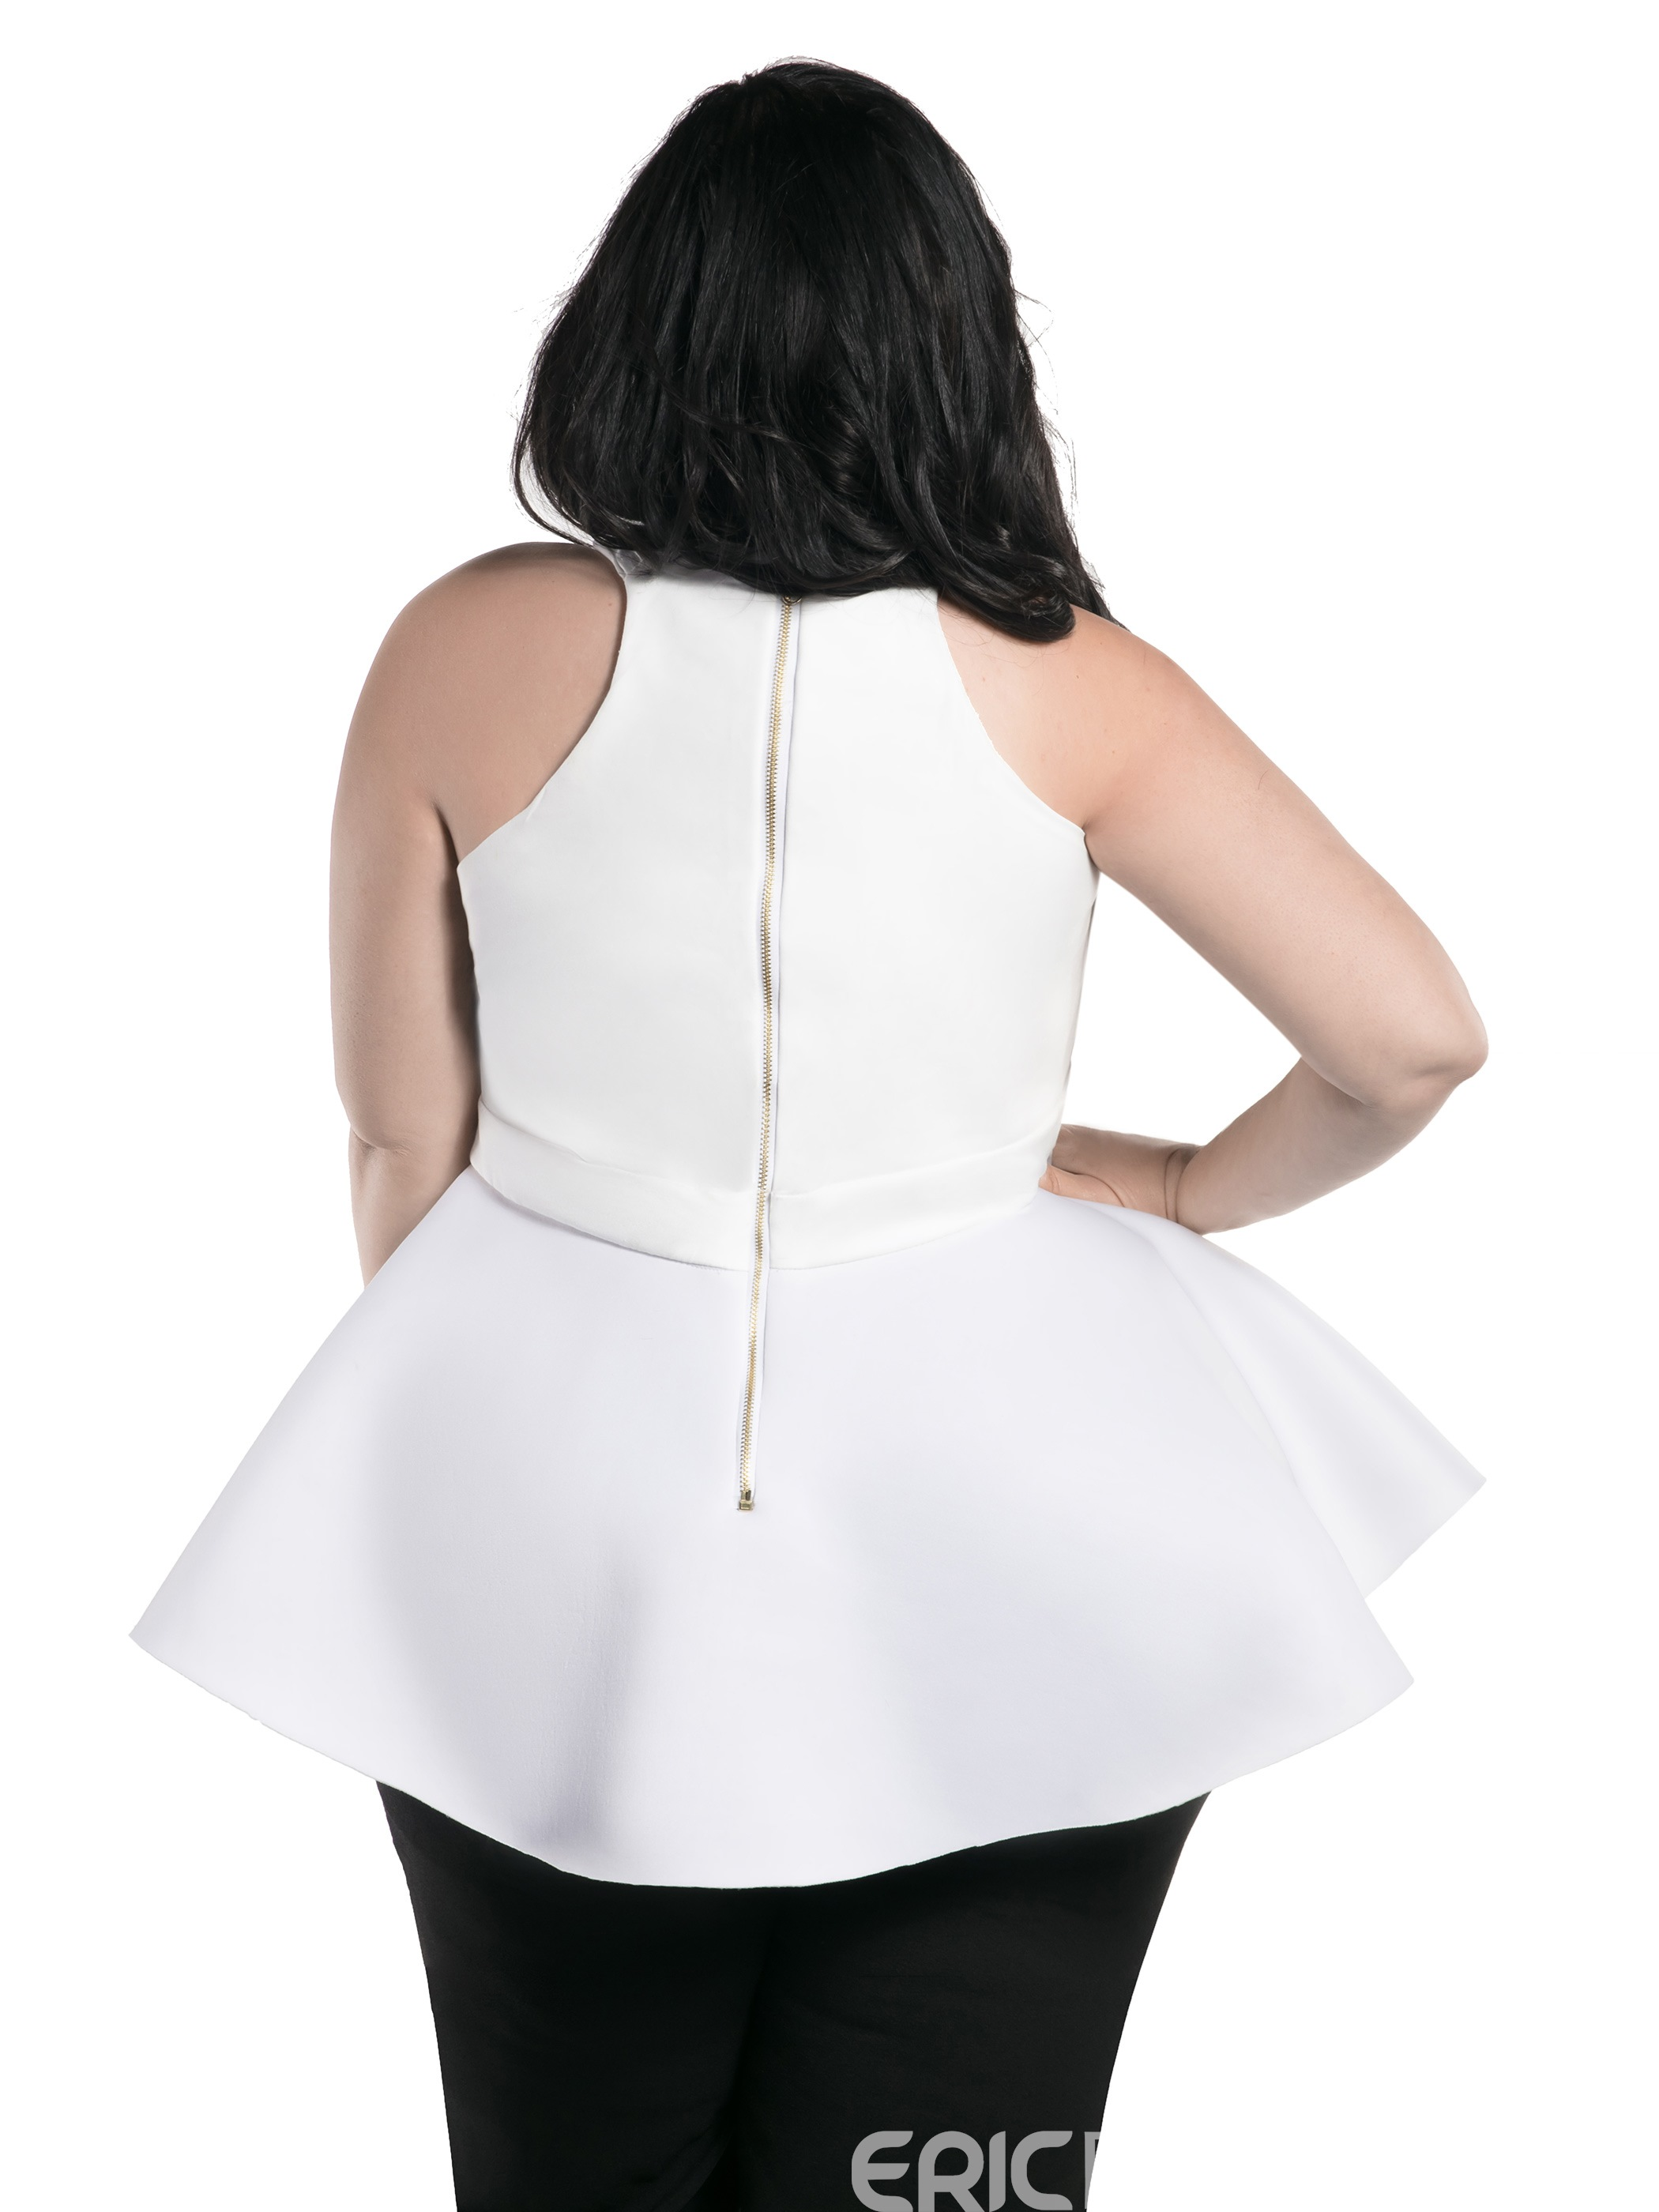 Ericdress Peplum Plus Size Zipper Vest